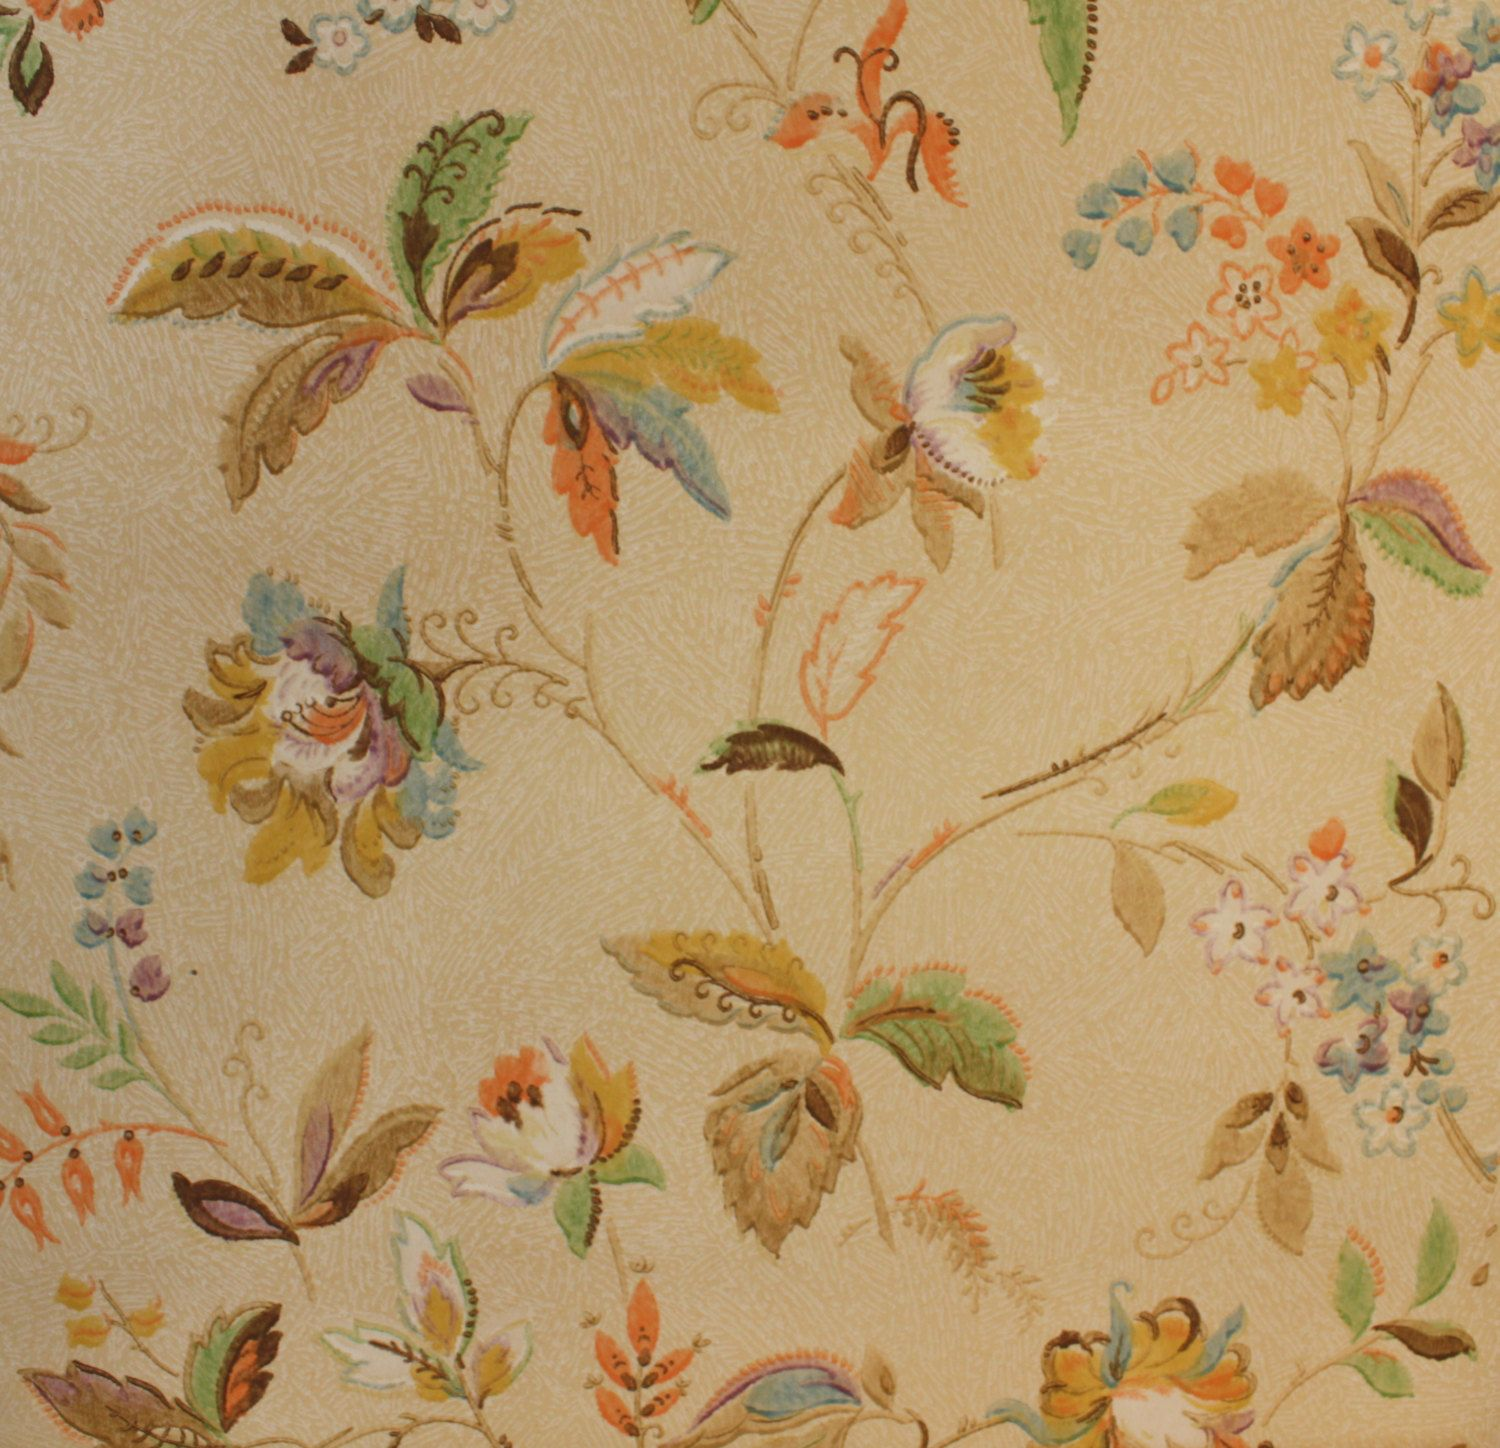 1930s Vintage Wallpaper By The Yard Antique Floral Wallpaper